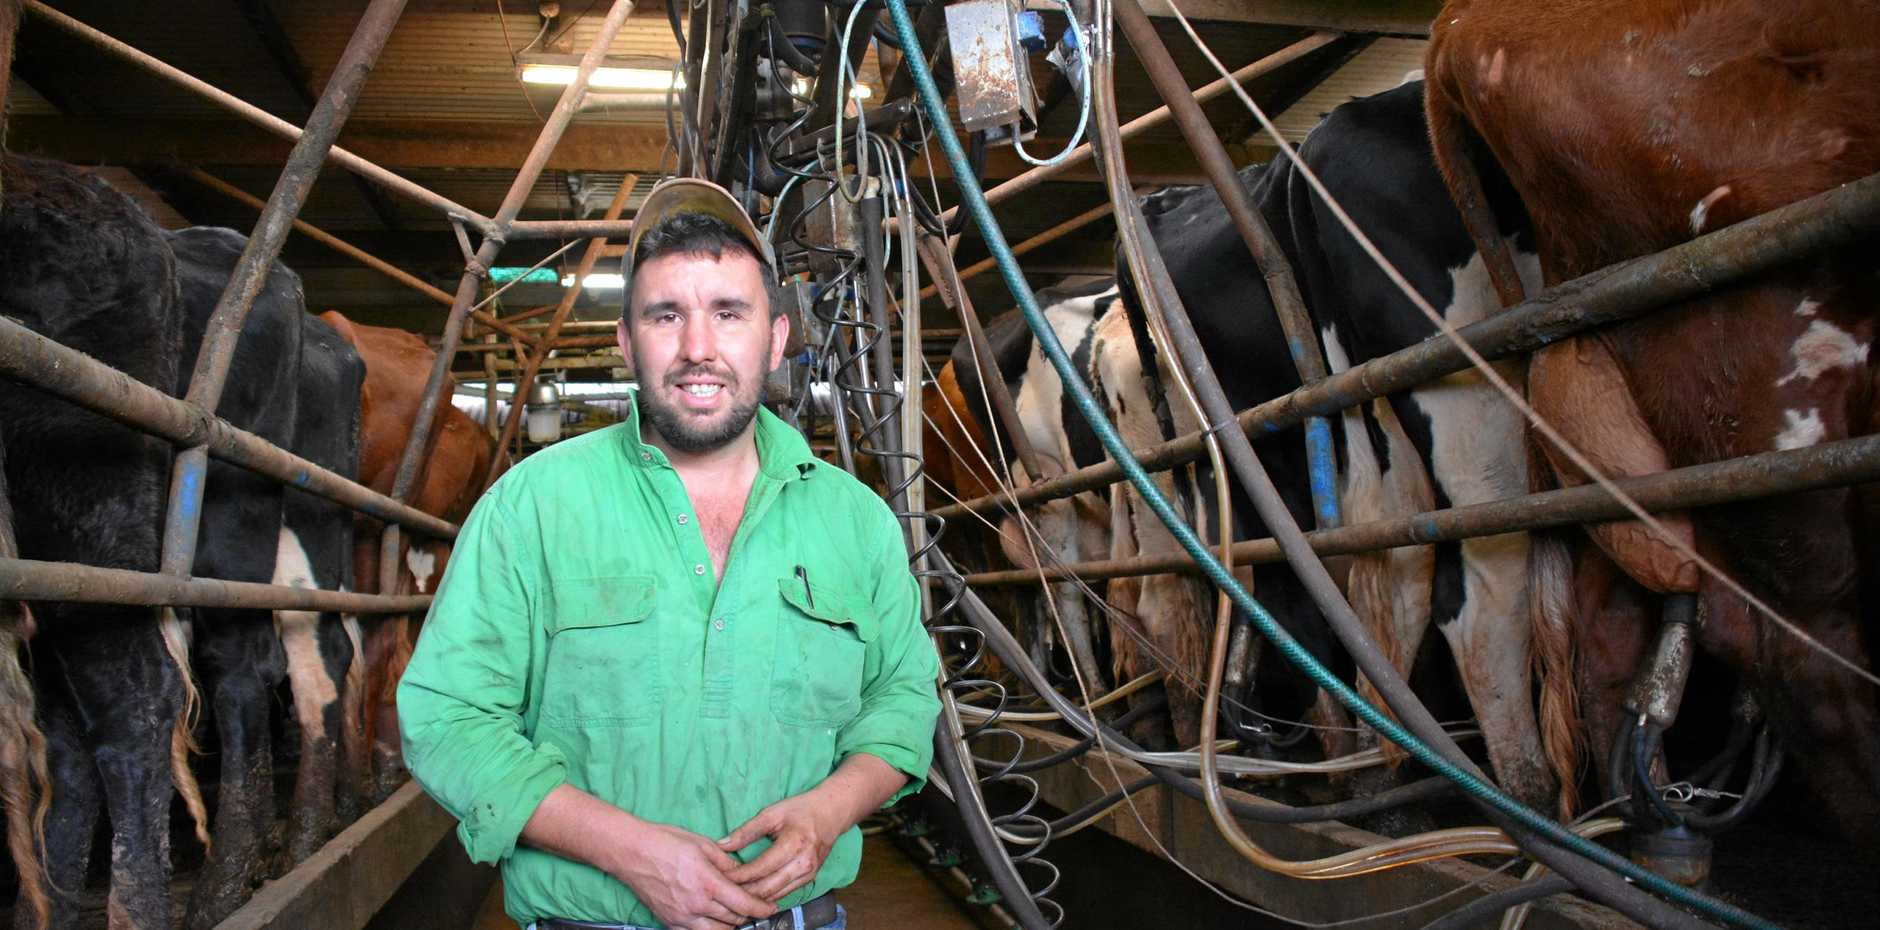 DAIRY DILEMMA: Research shows shoppers would be happy to pay more for a supermarket private label if some money went to local dairy farmers like Damien Tessman.